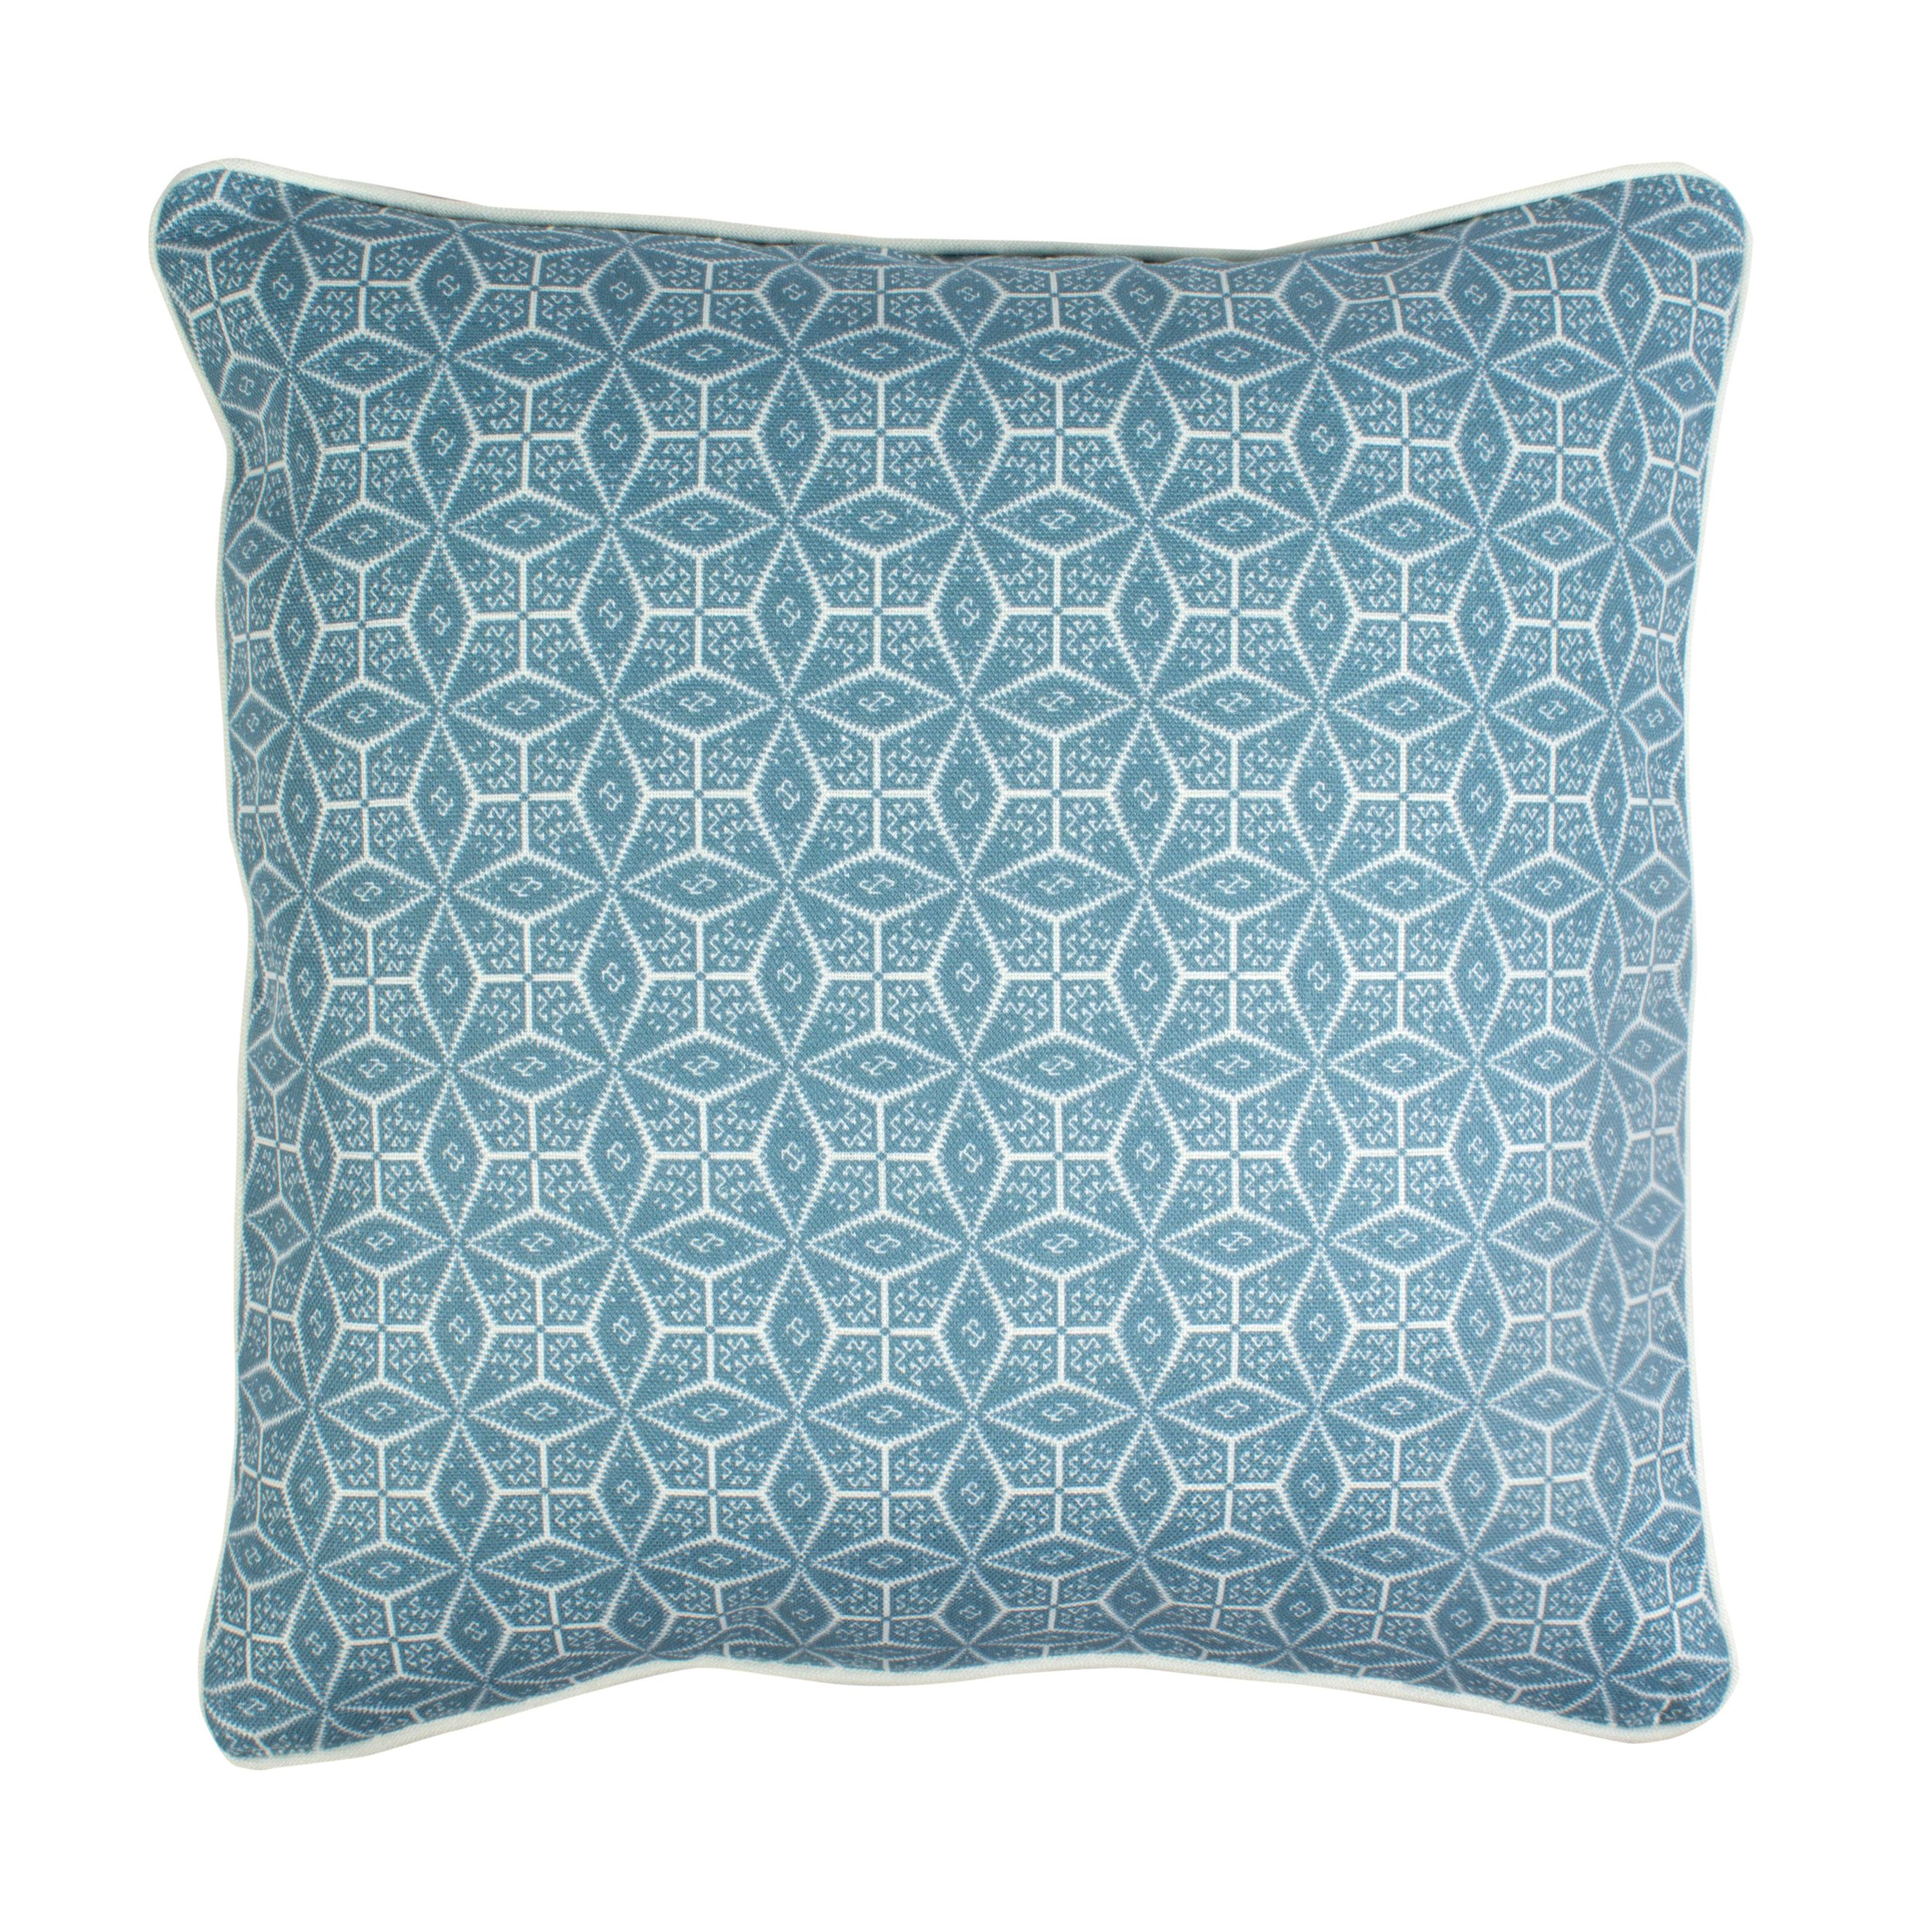 Pillow_blue2.jpg